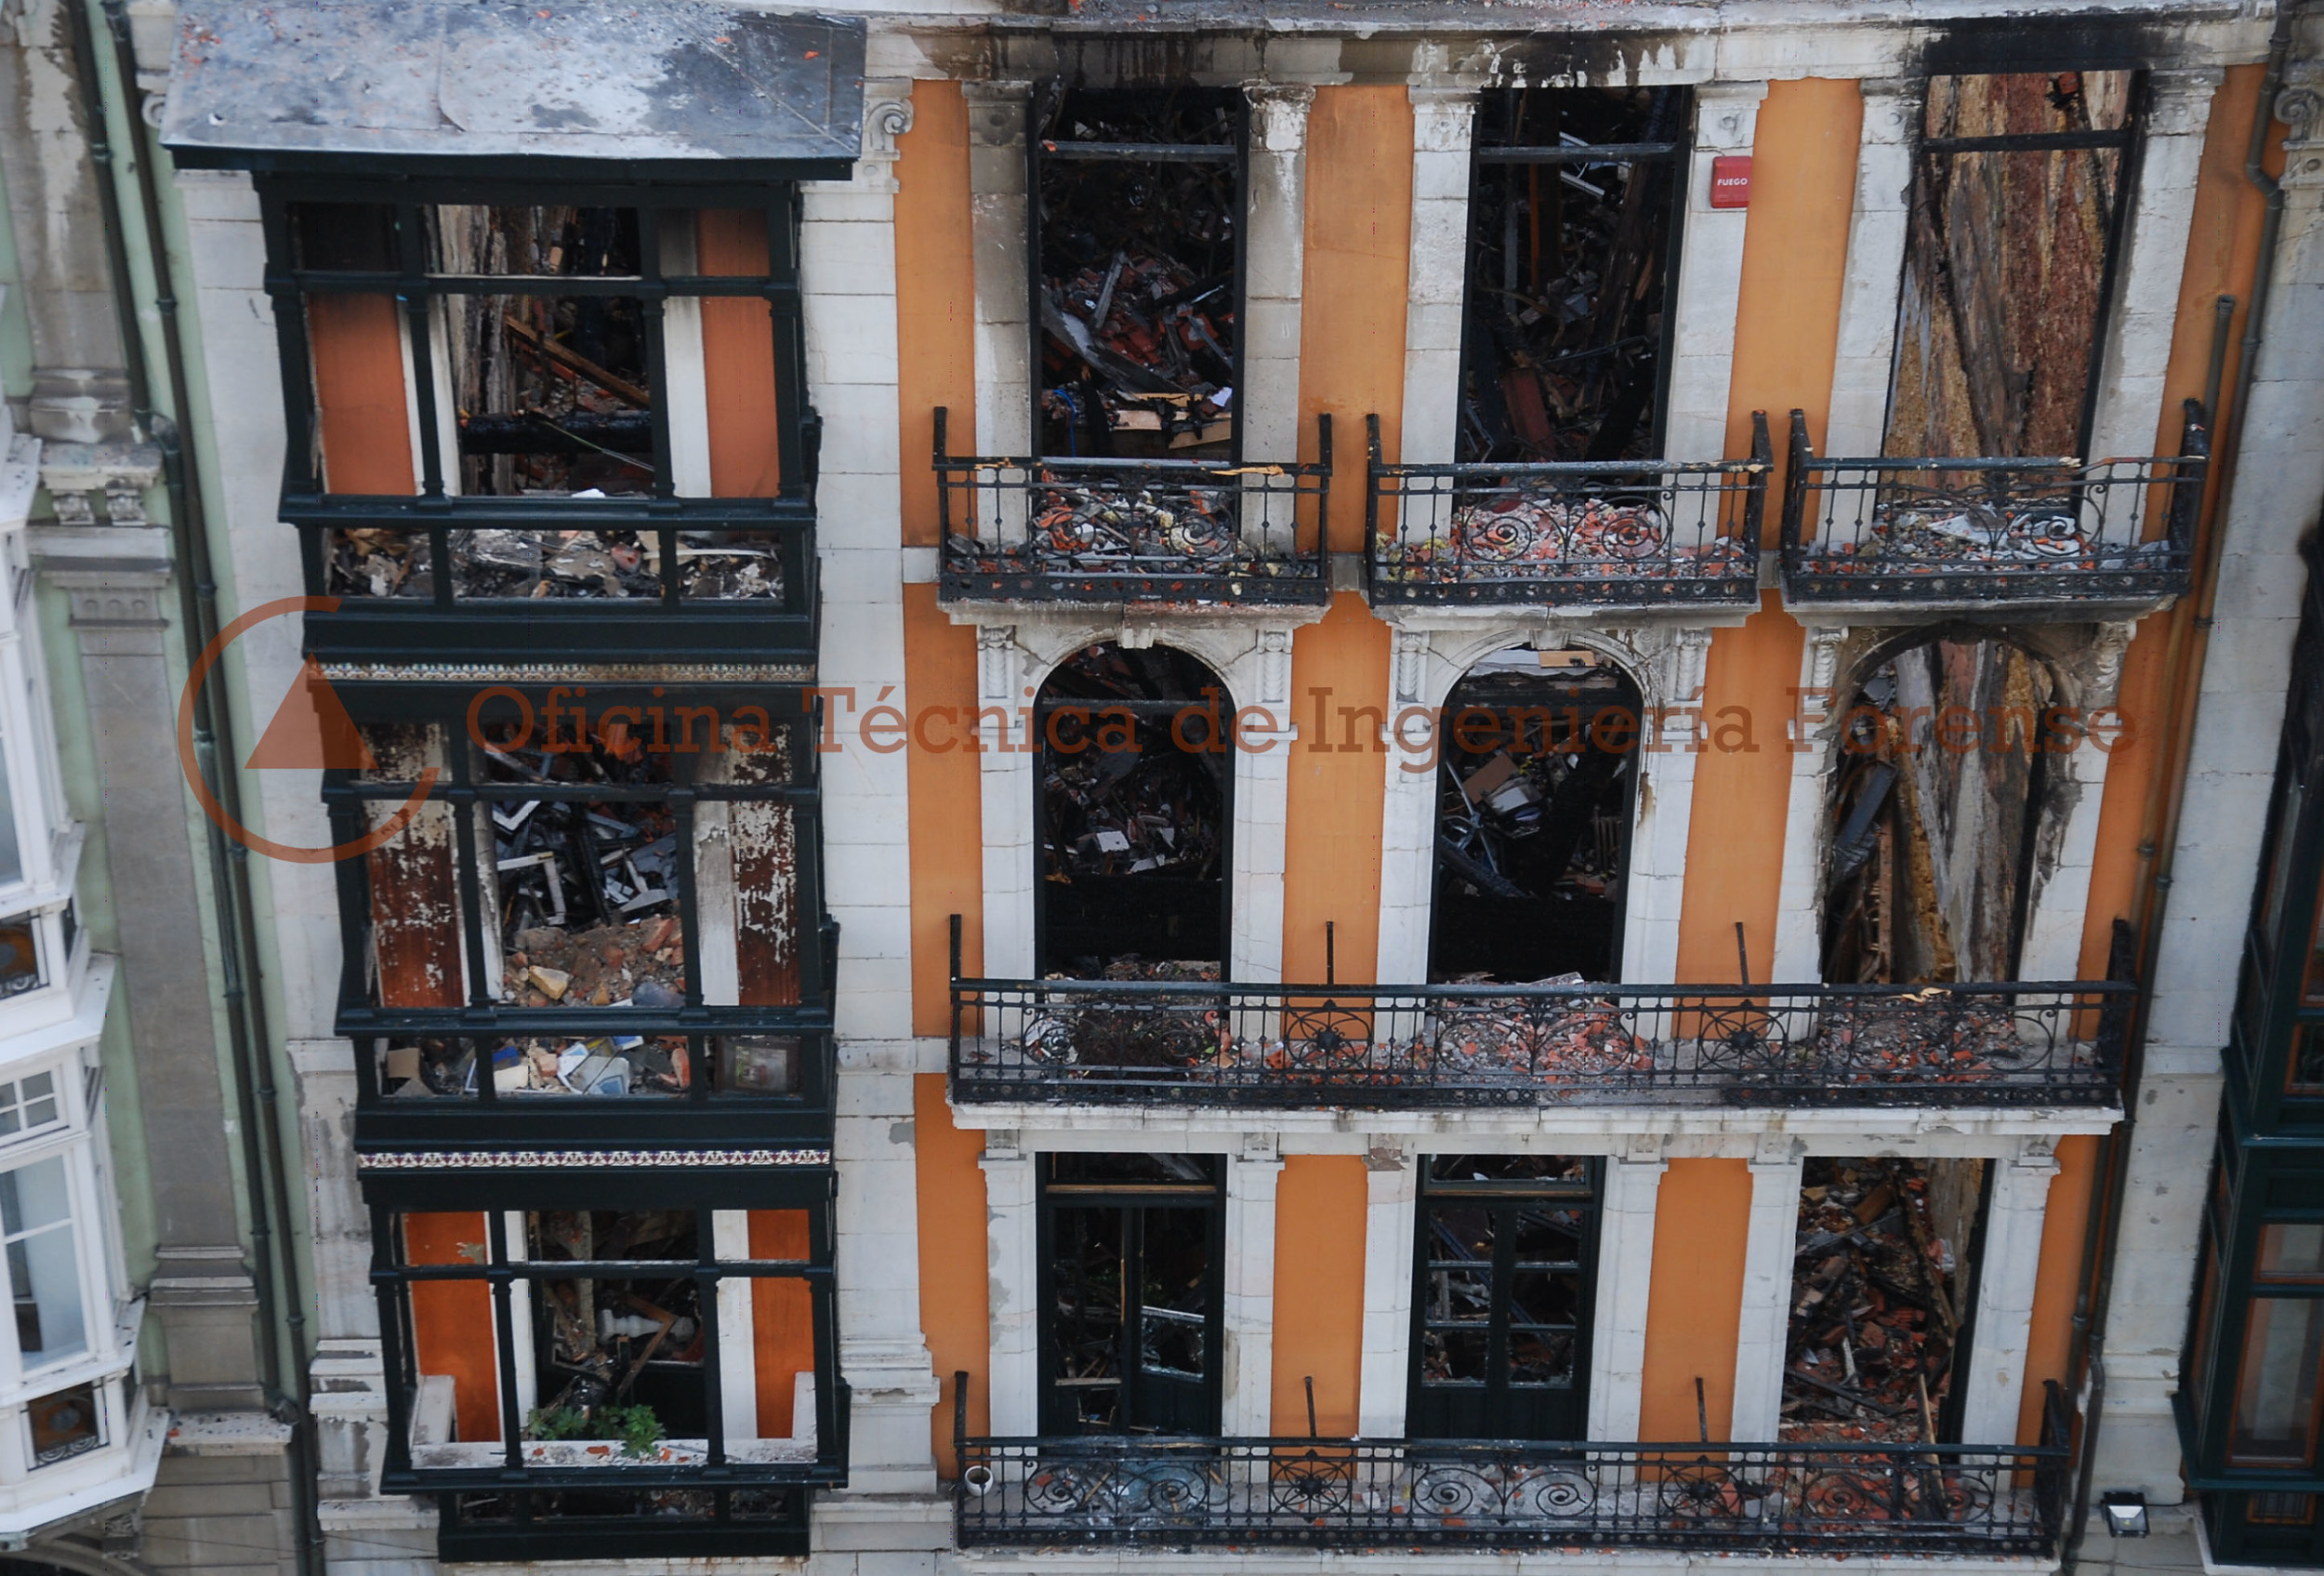 IncendioEdificioOviedo5.jpg